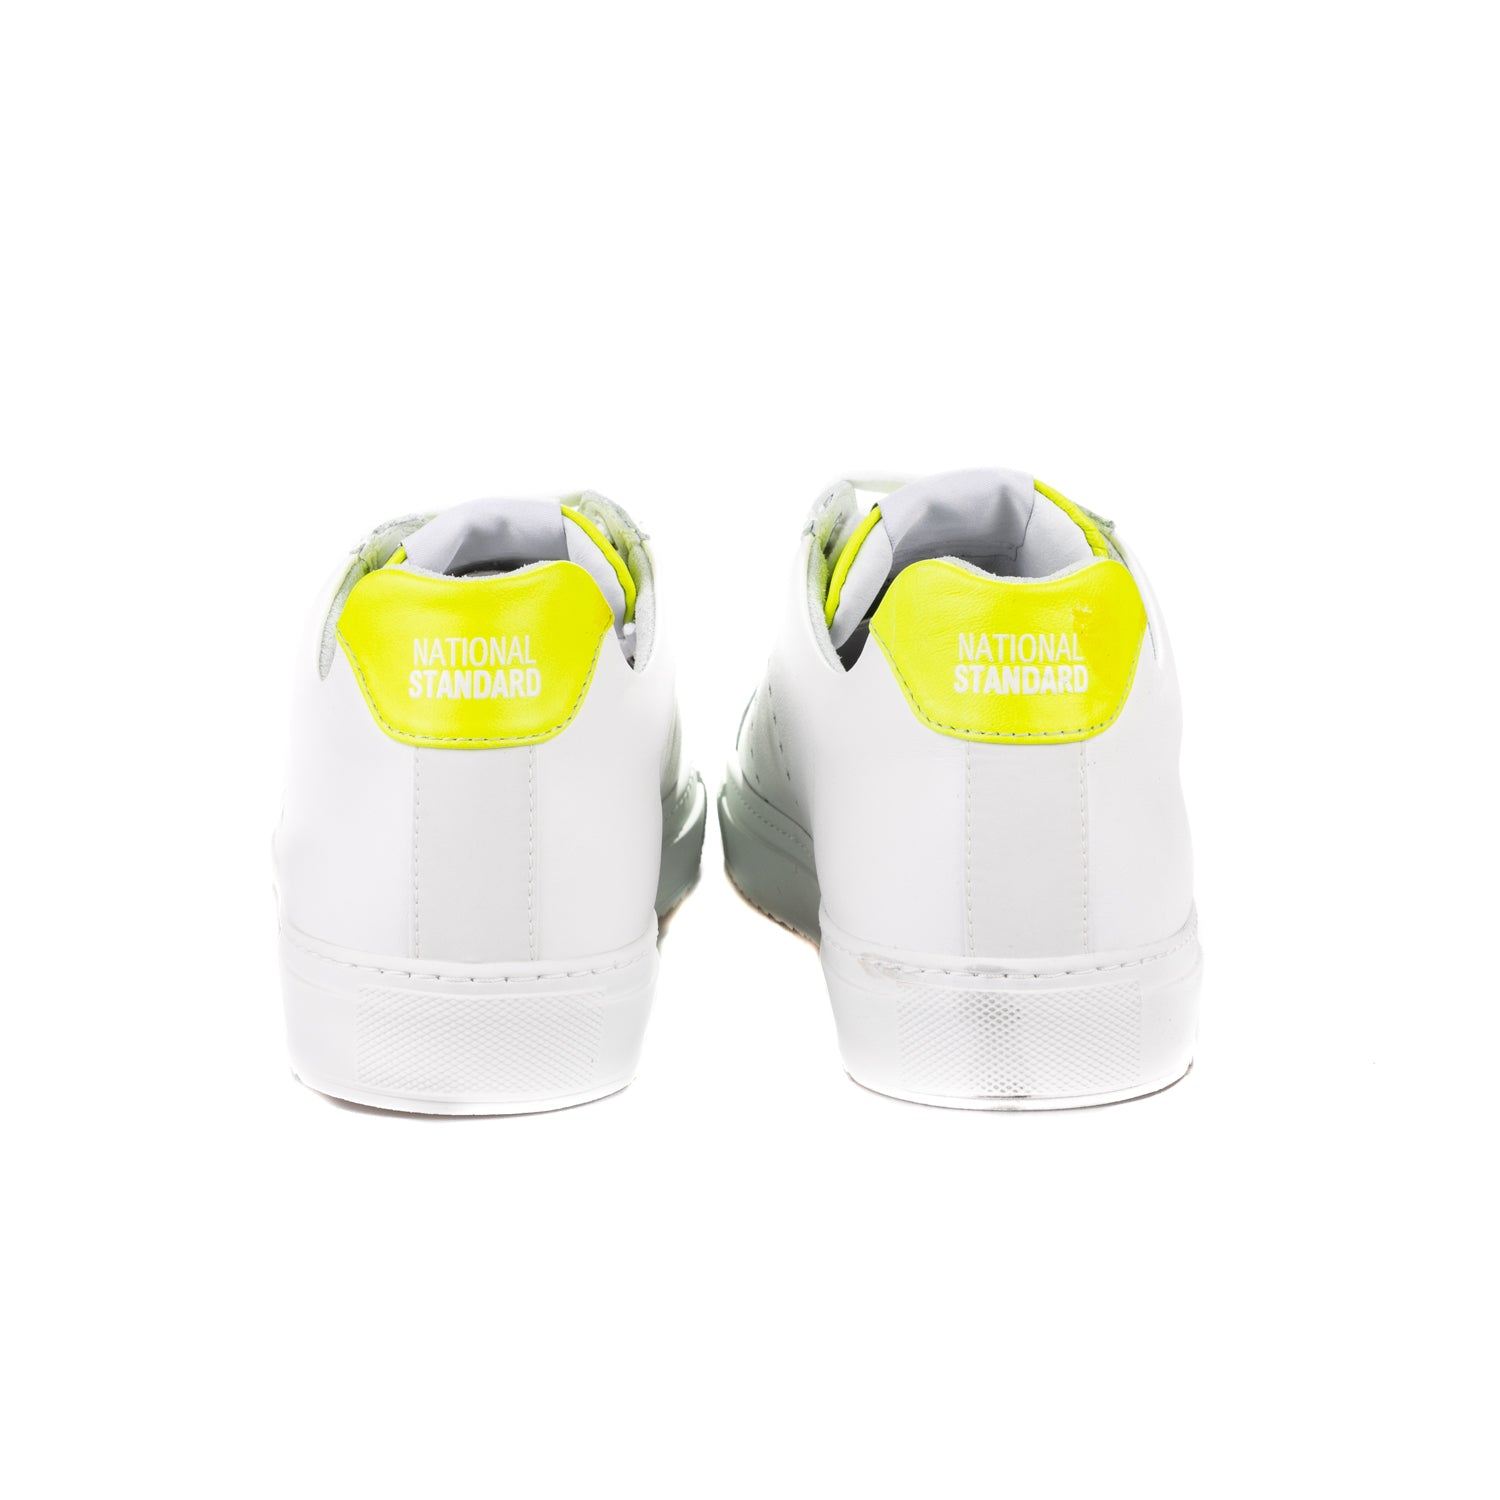 National Standard Sneaker Yellow Tech